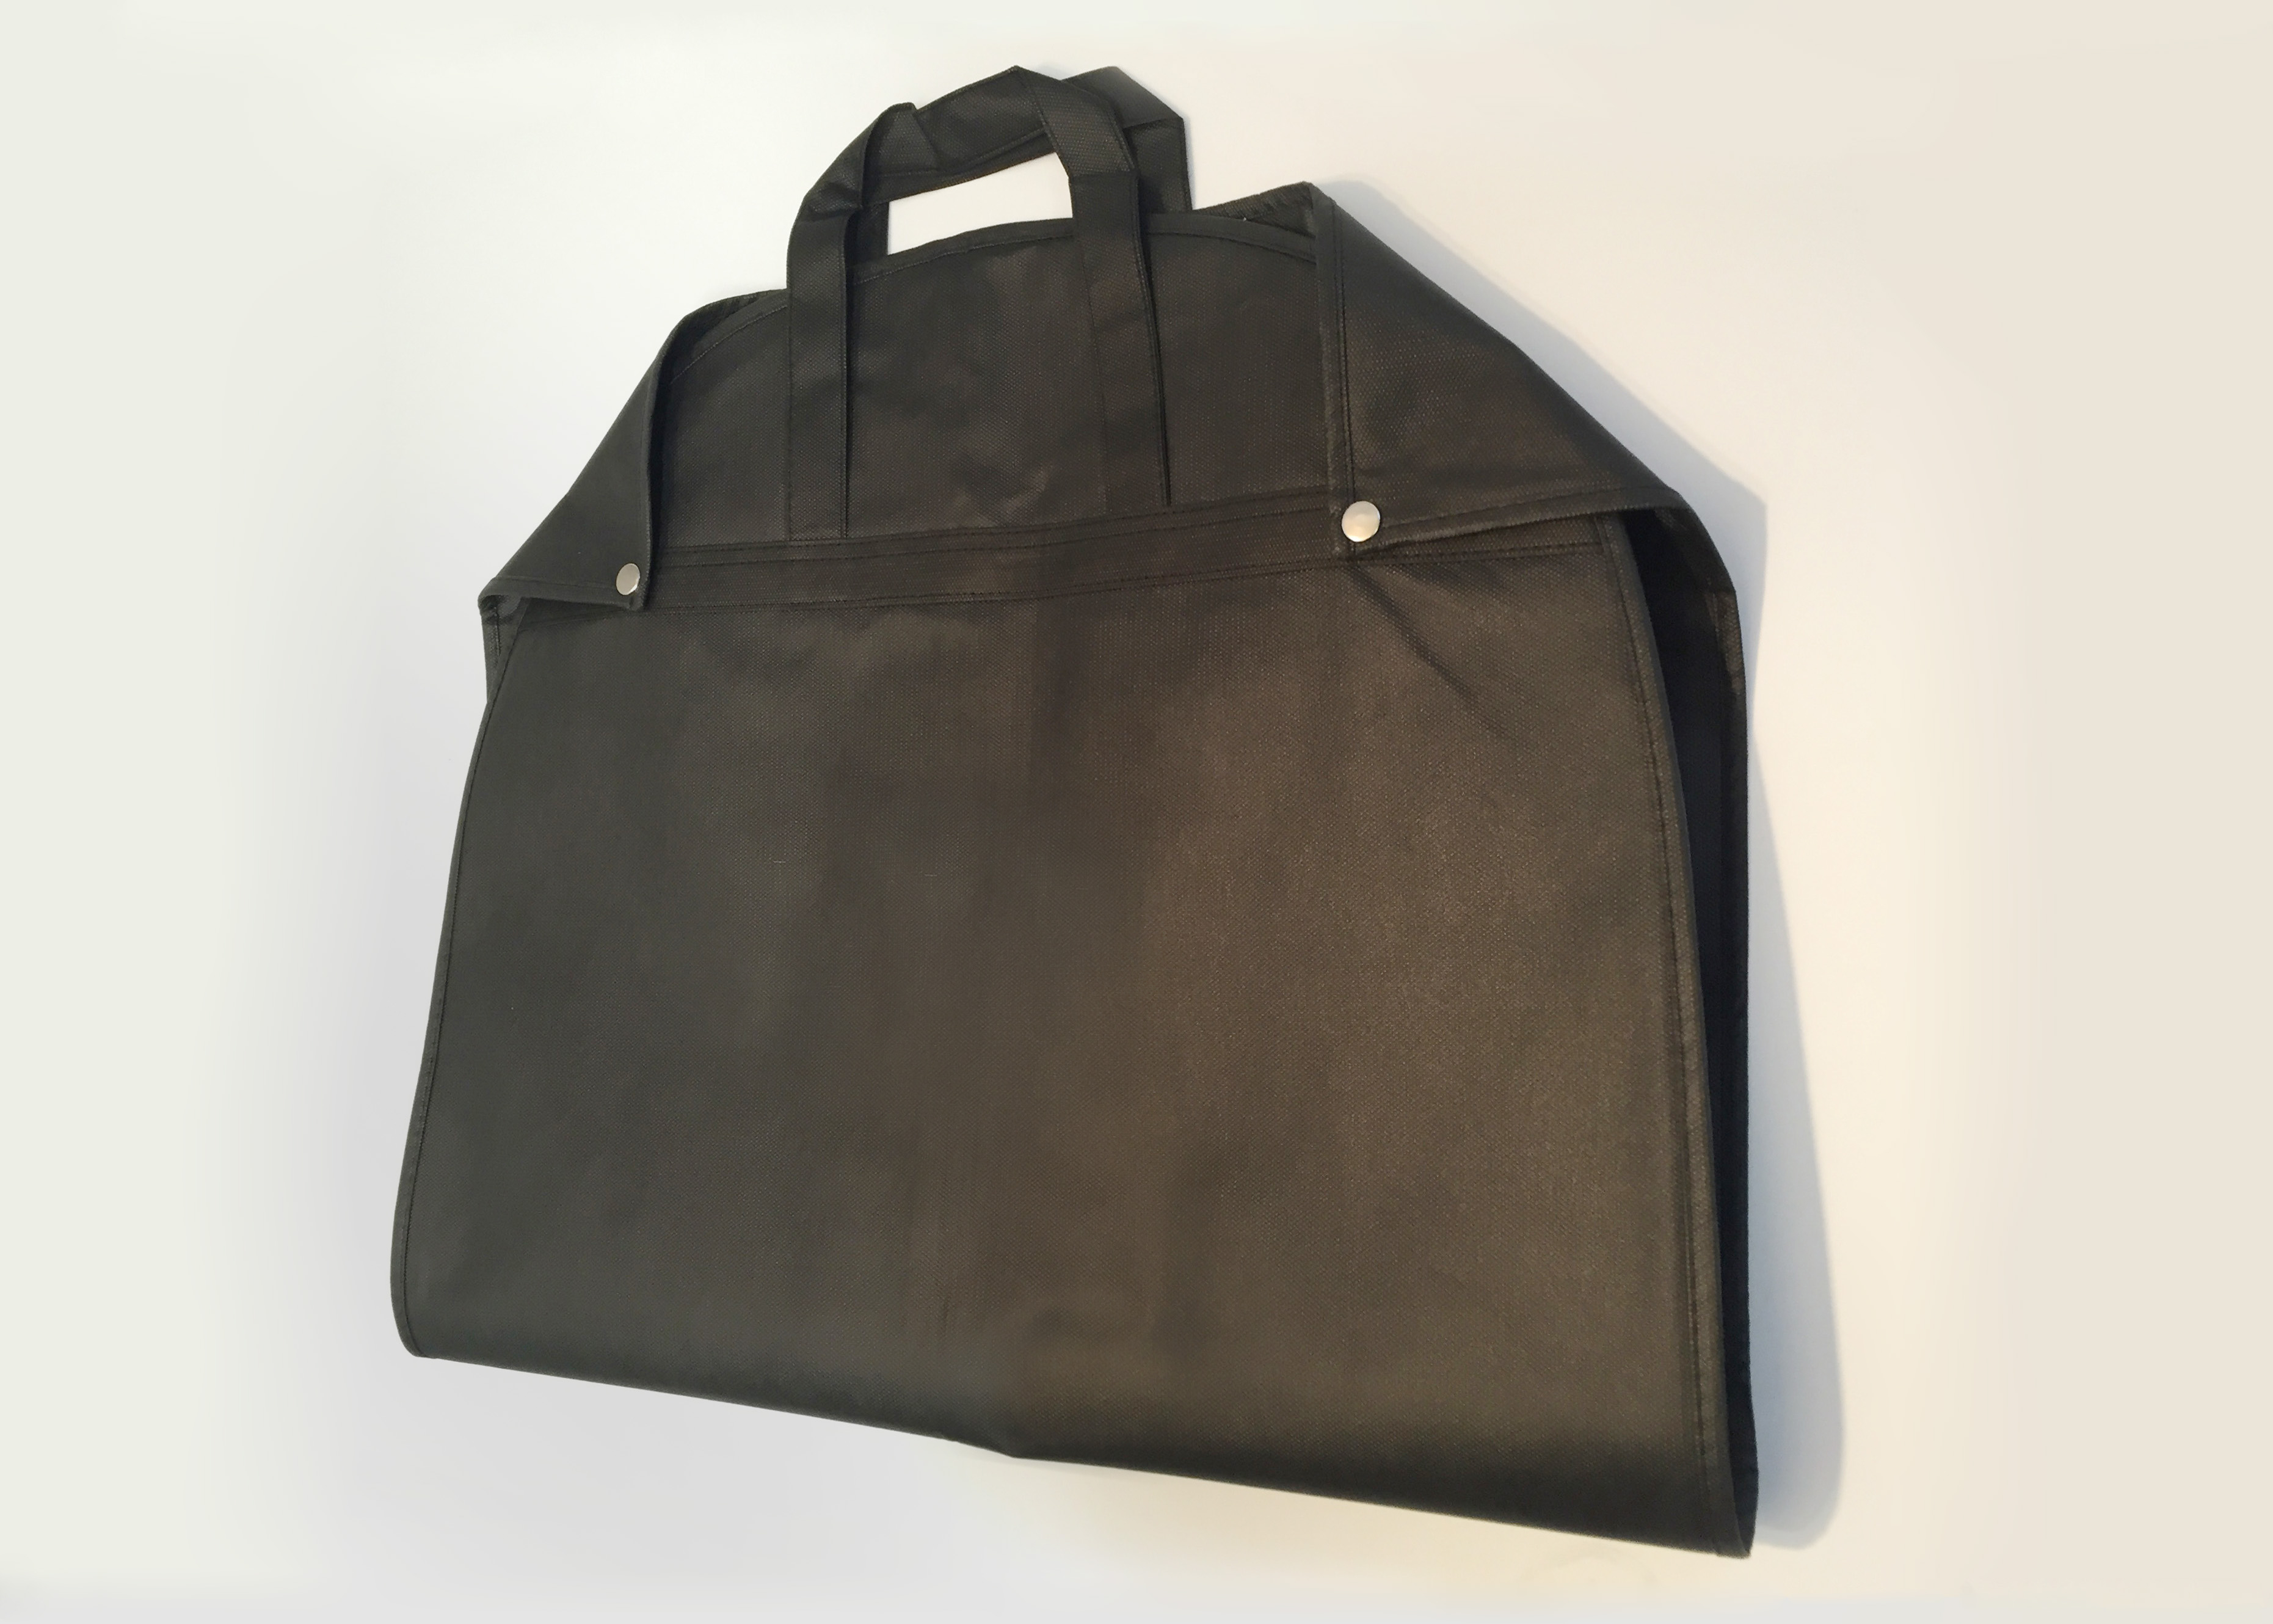 BLACK NON WOVEN FABRIC GARMENT BAG